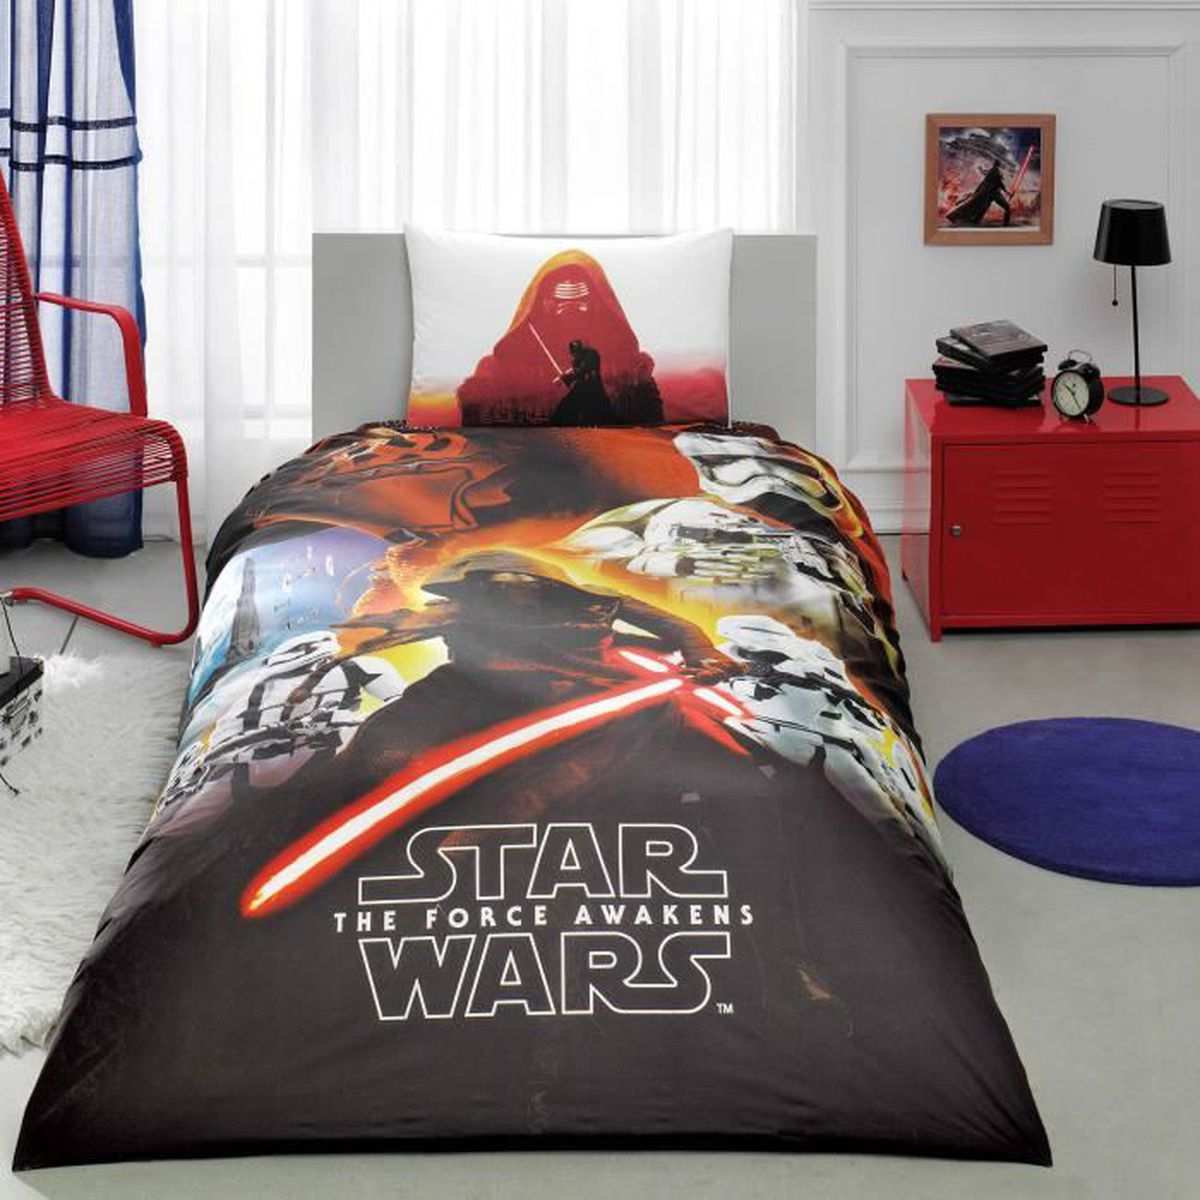 star wars movie imprim e 100 coton 1 personne parure de. Black Bedroom Furniture Sets. Home Design Ideas